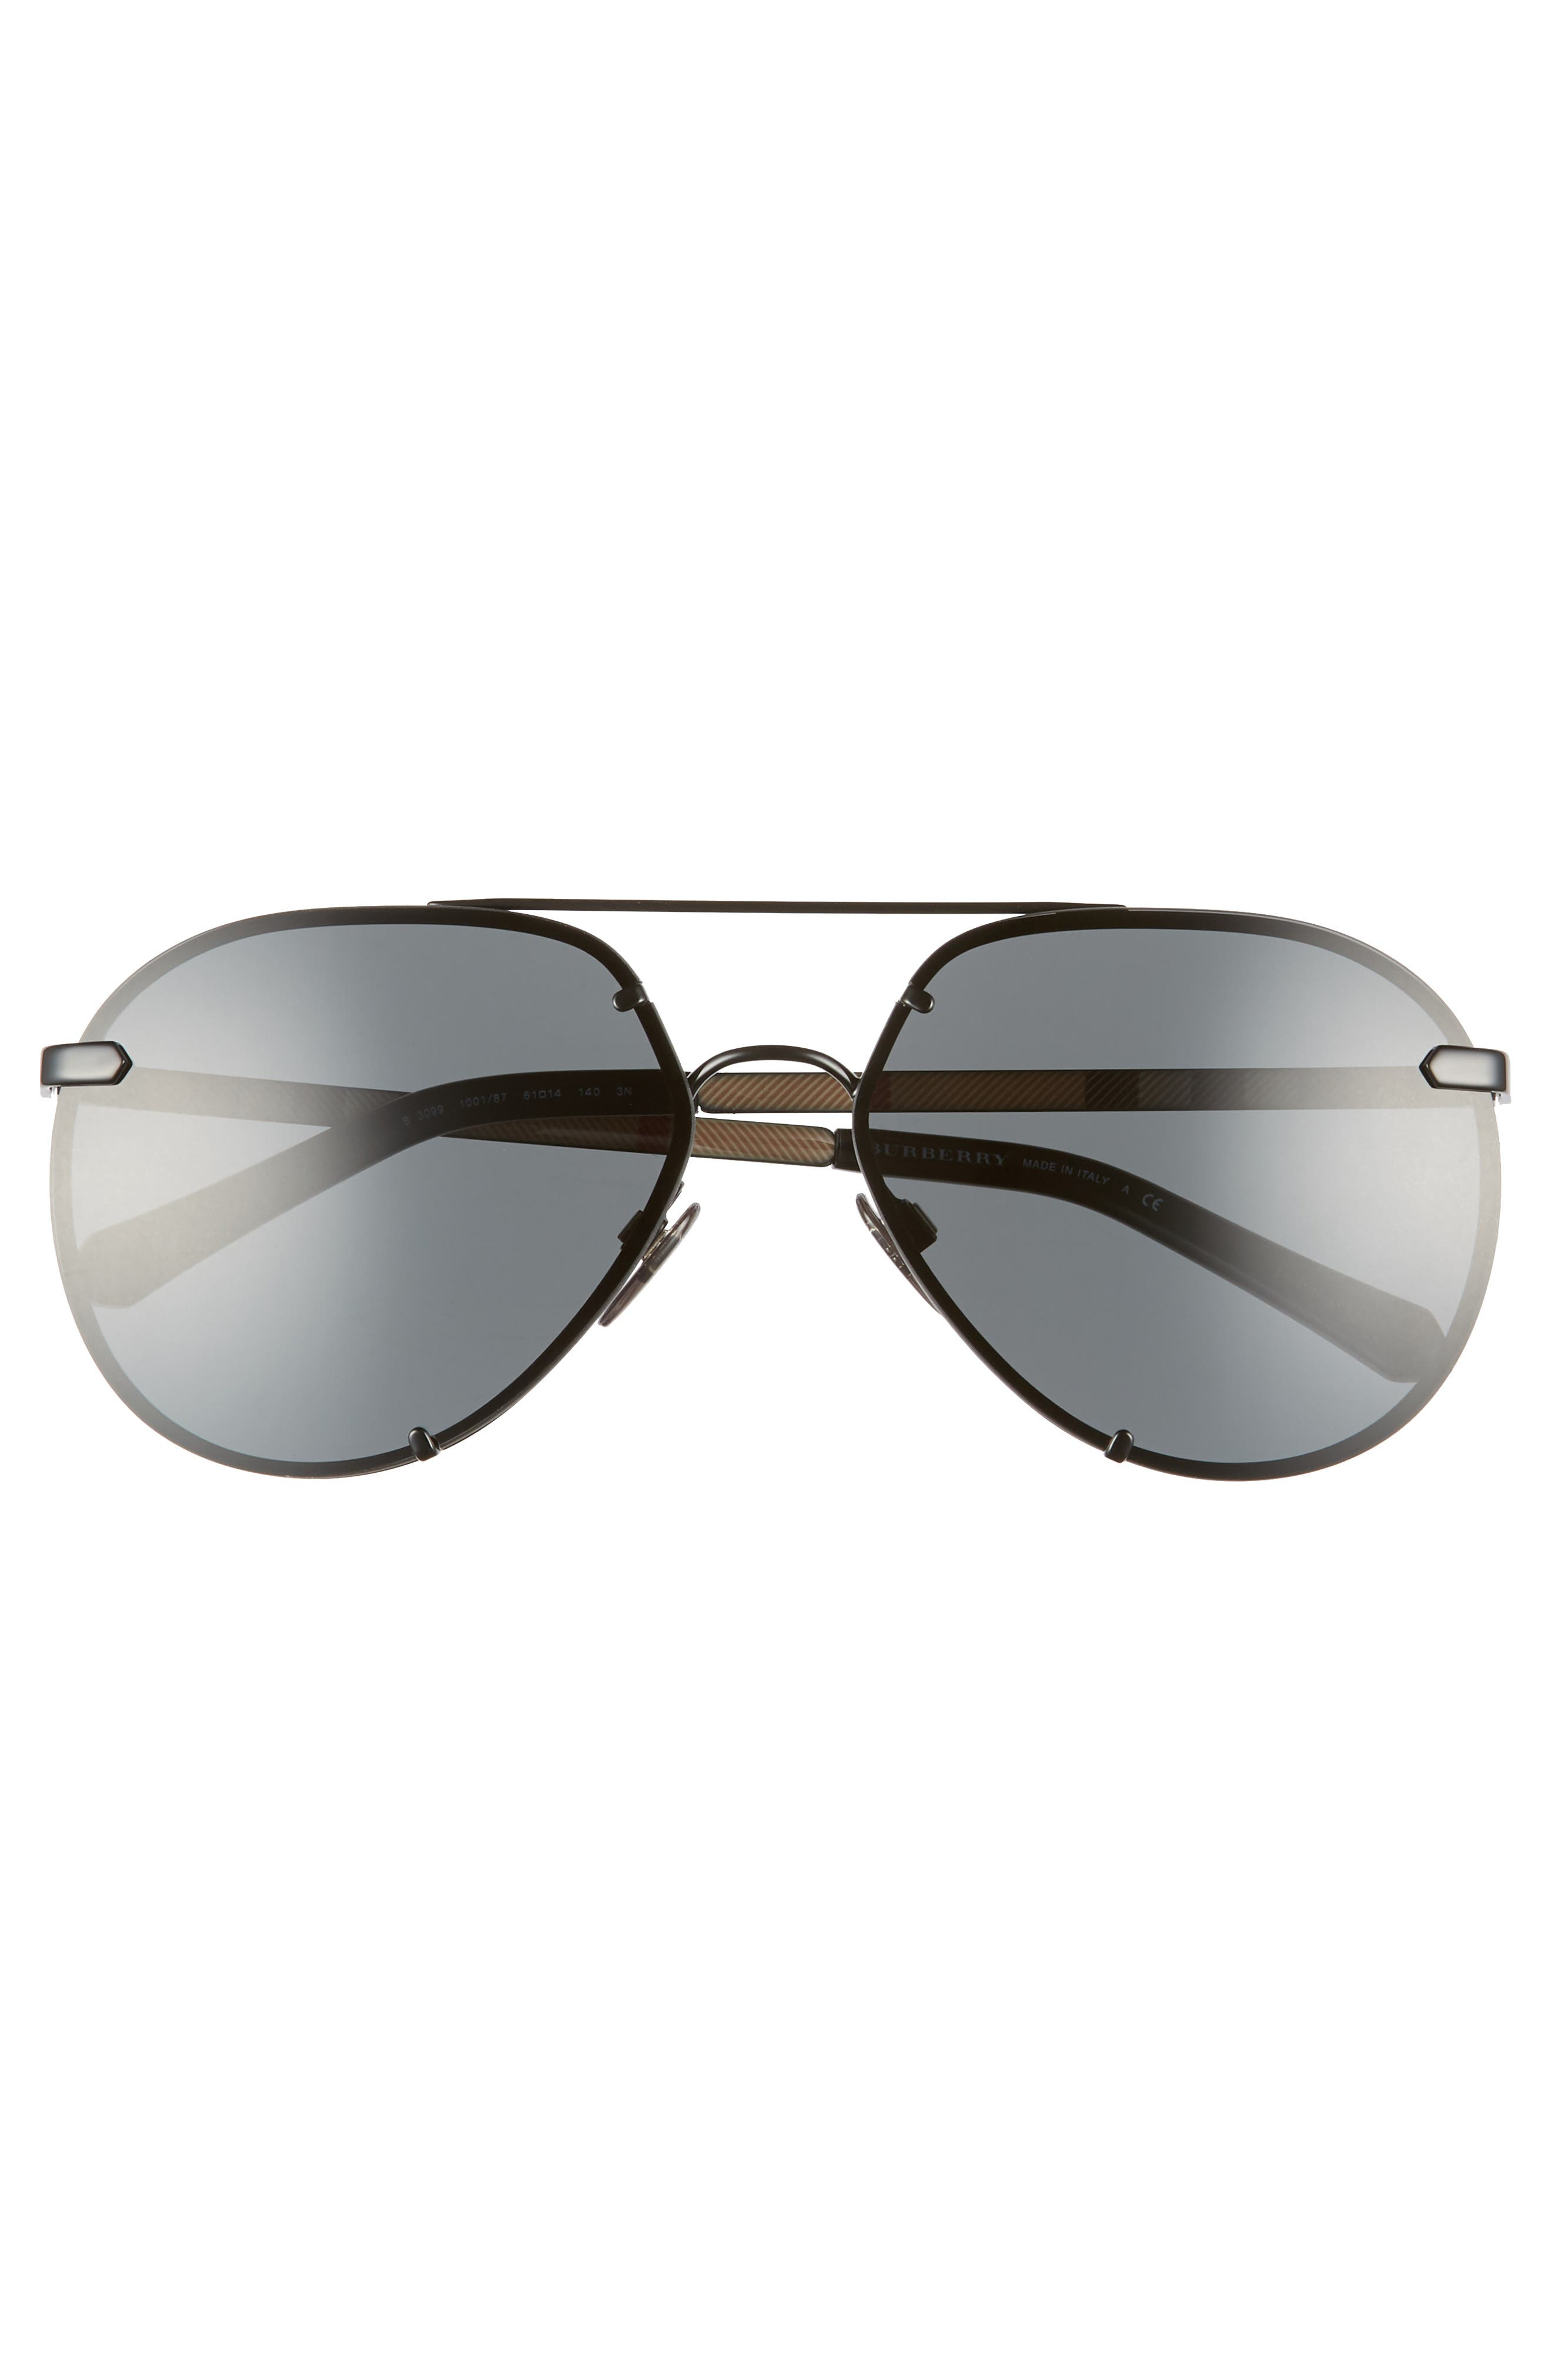 Trench 61mm Aviator Sunglasses,                             Alternate thumbnail 3, color,                             BLACK SOLID